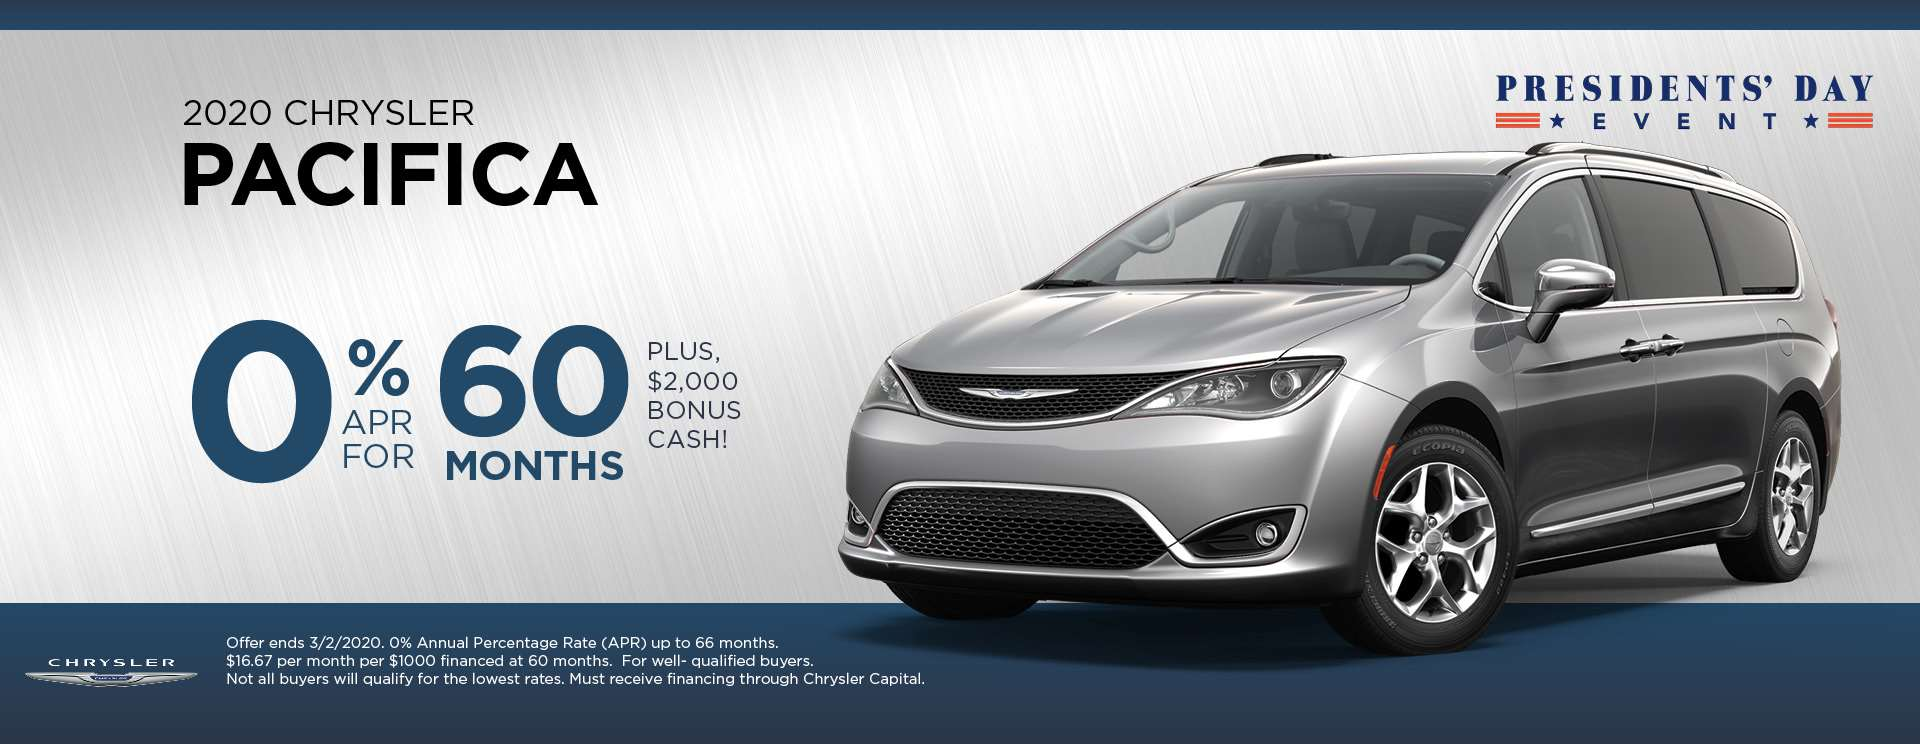 2020 Chrysler Pacifica - President's Day Event